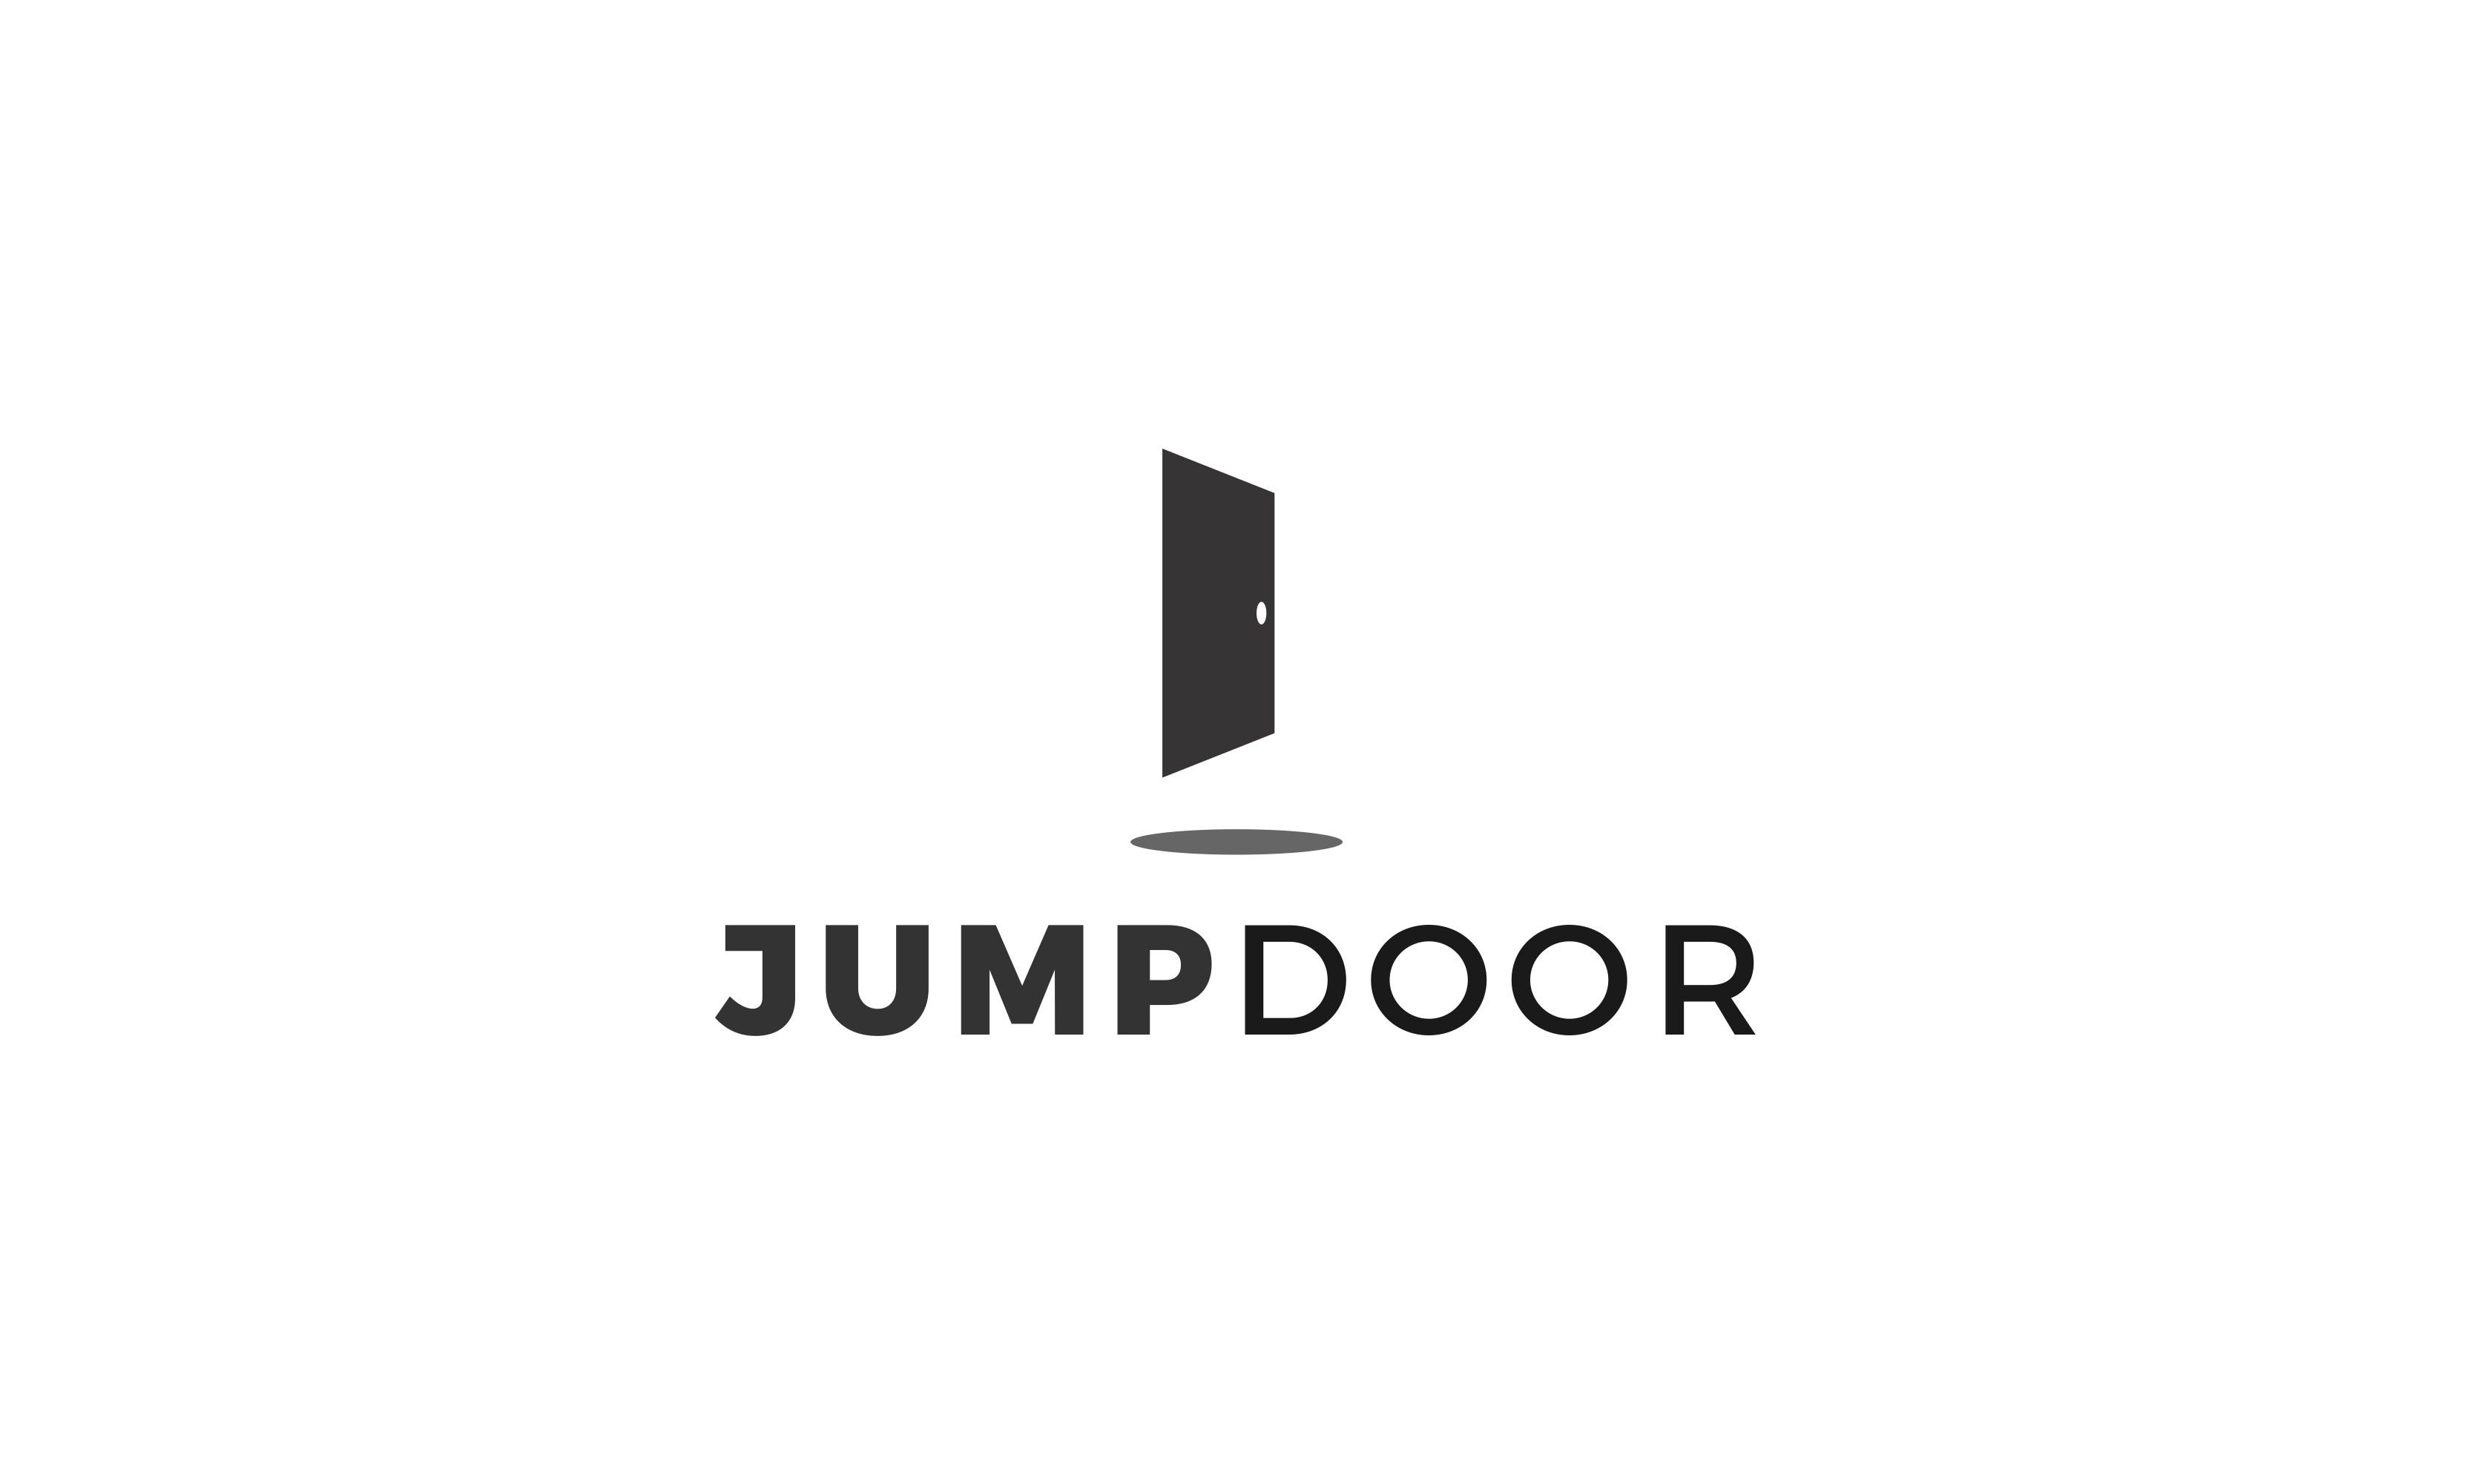 jumpdoor logo